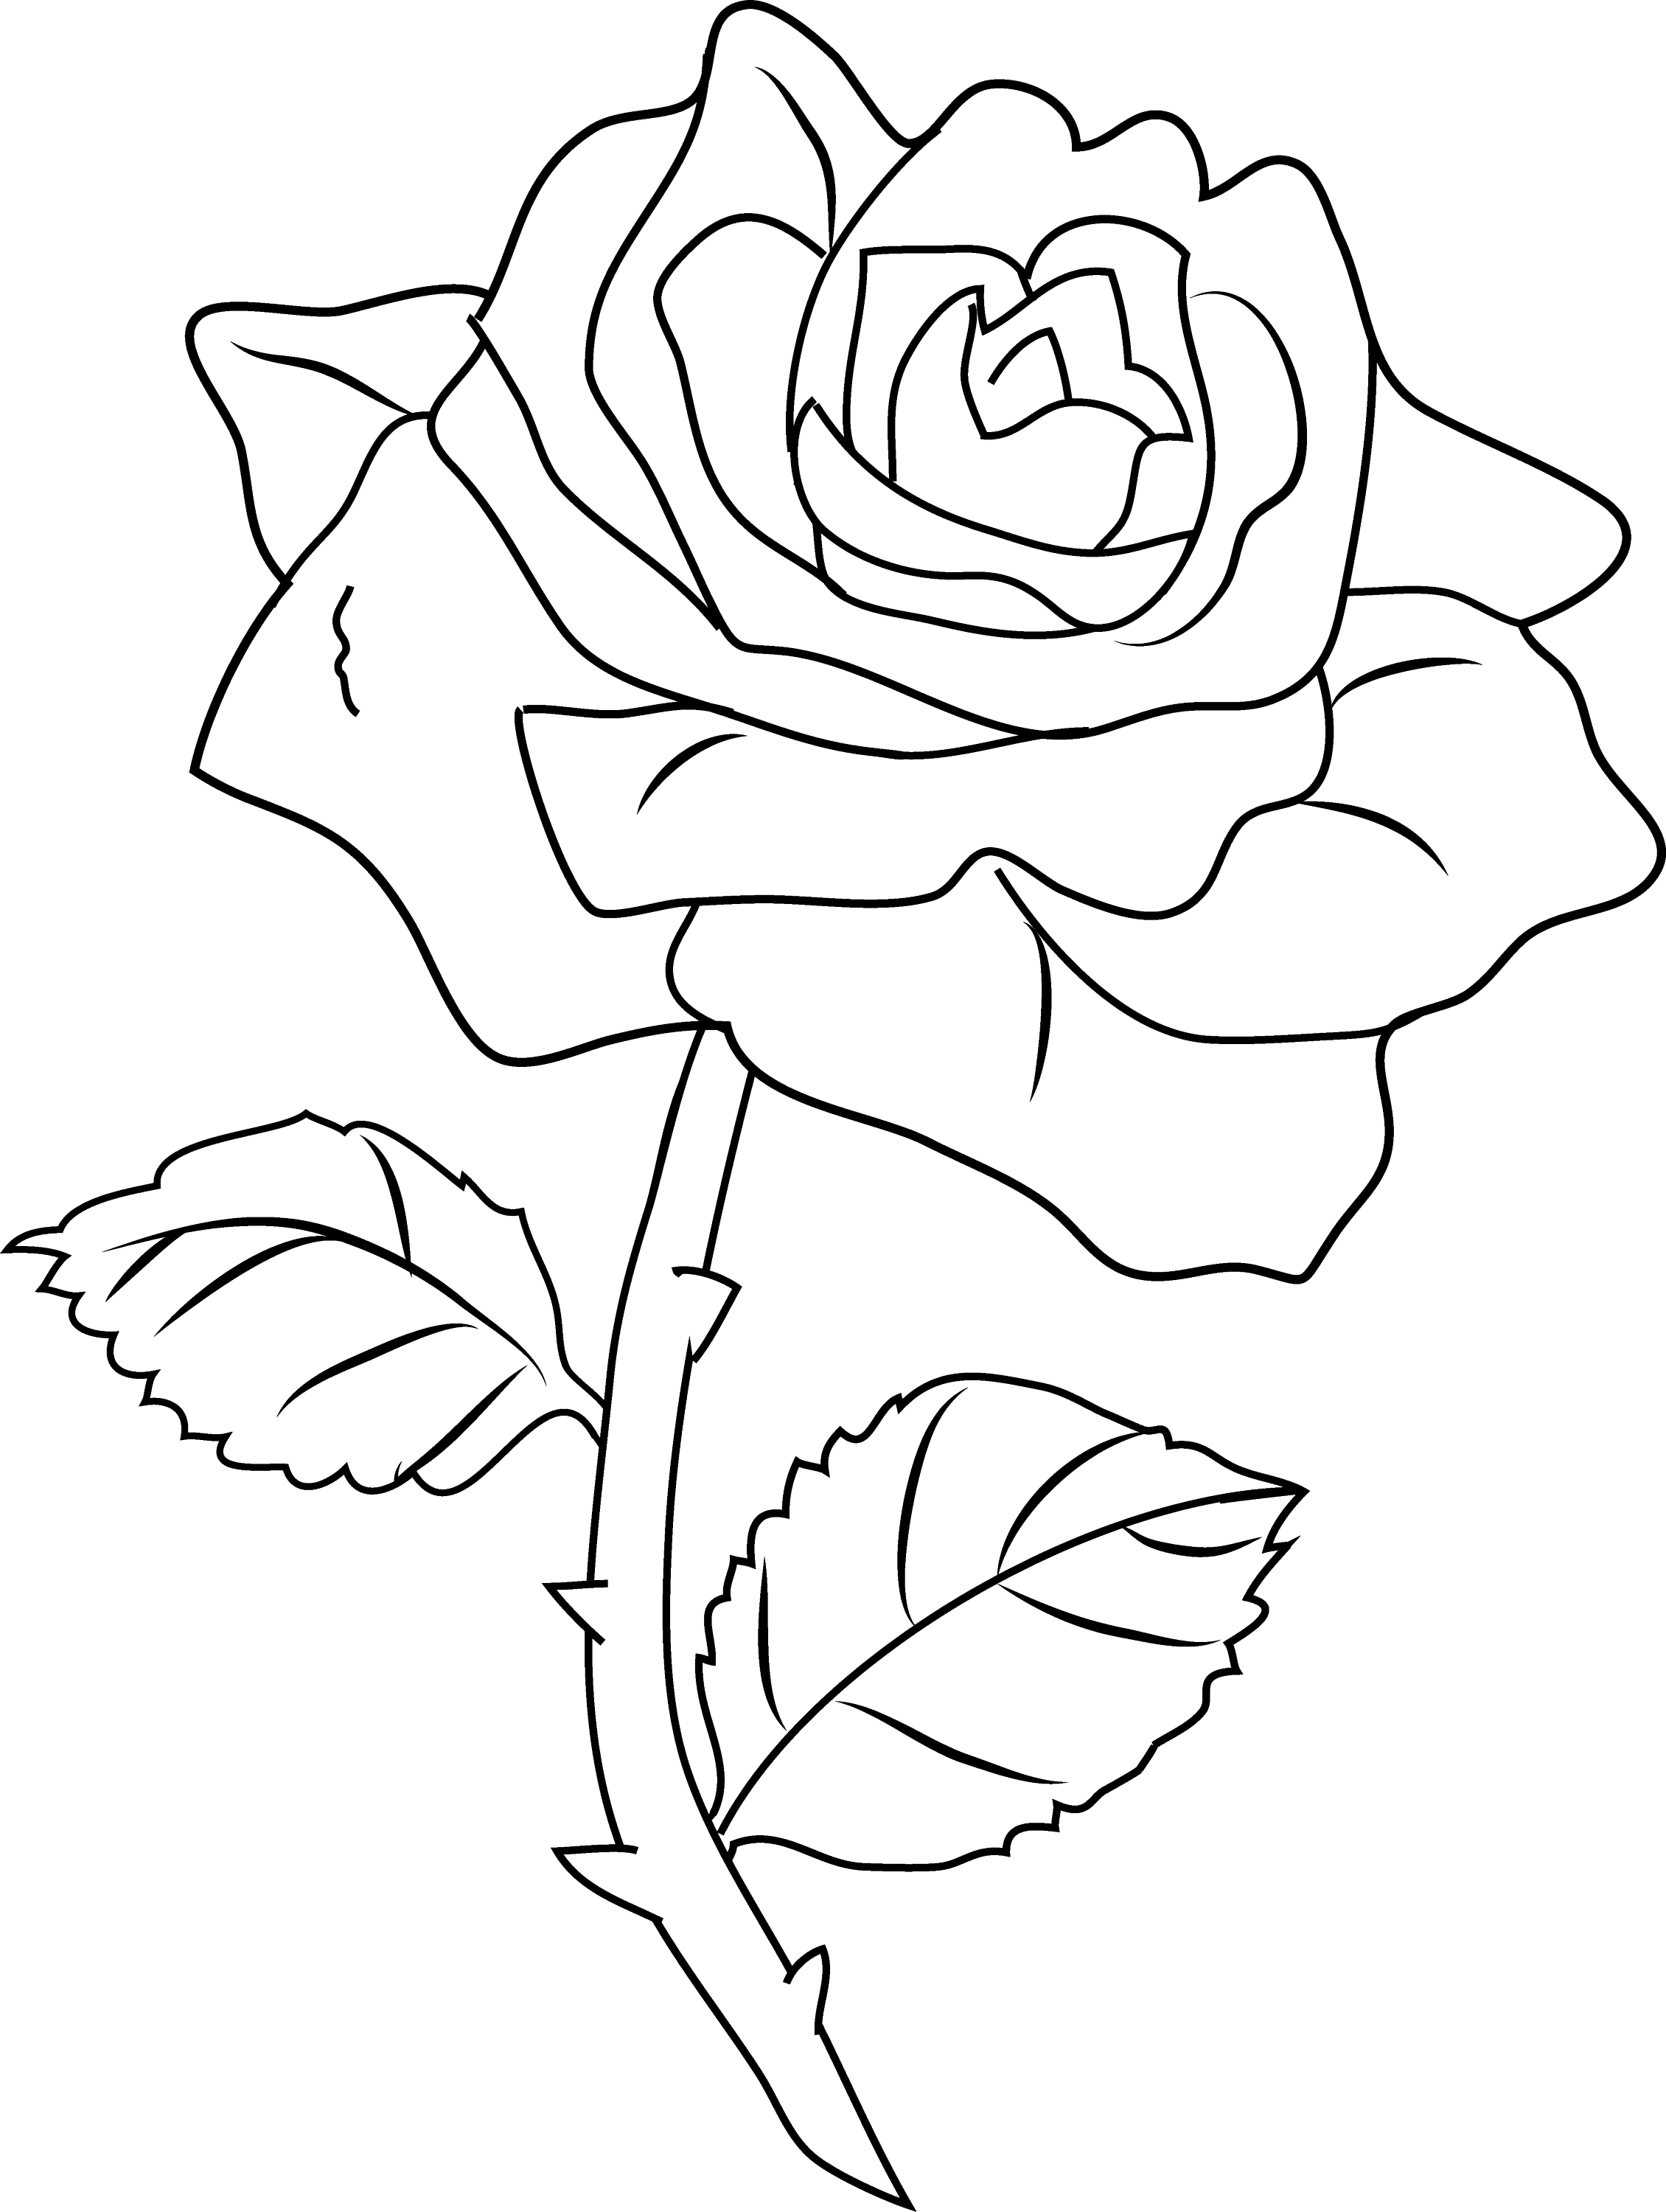 rose coloring pages to print rose coloring pages printable to print coloring rose pages